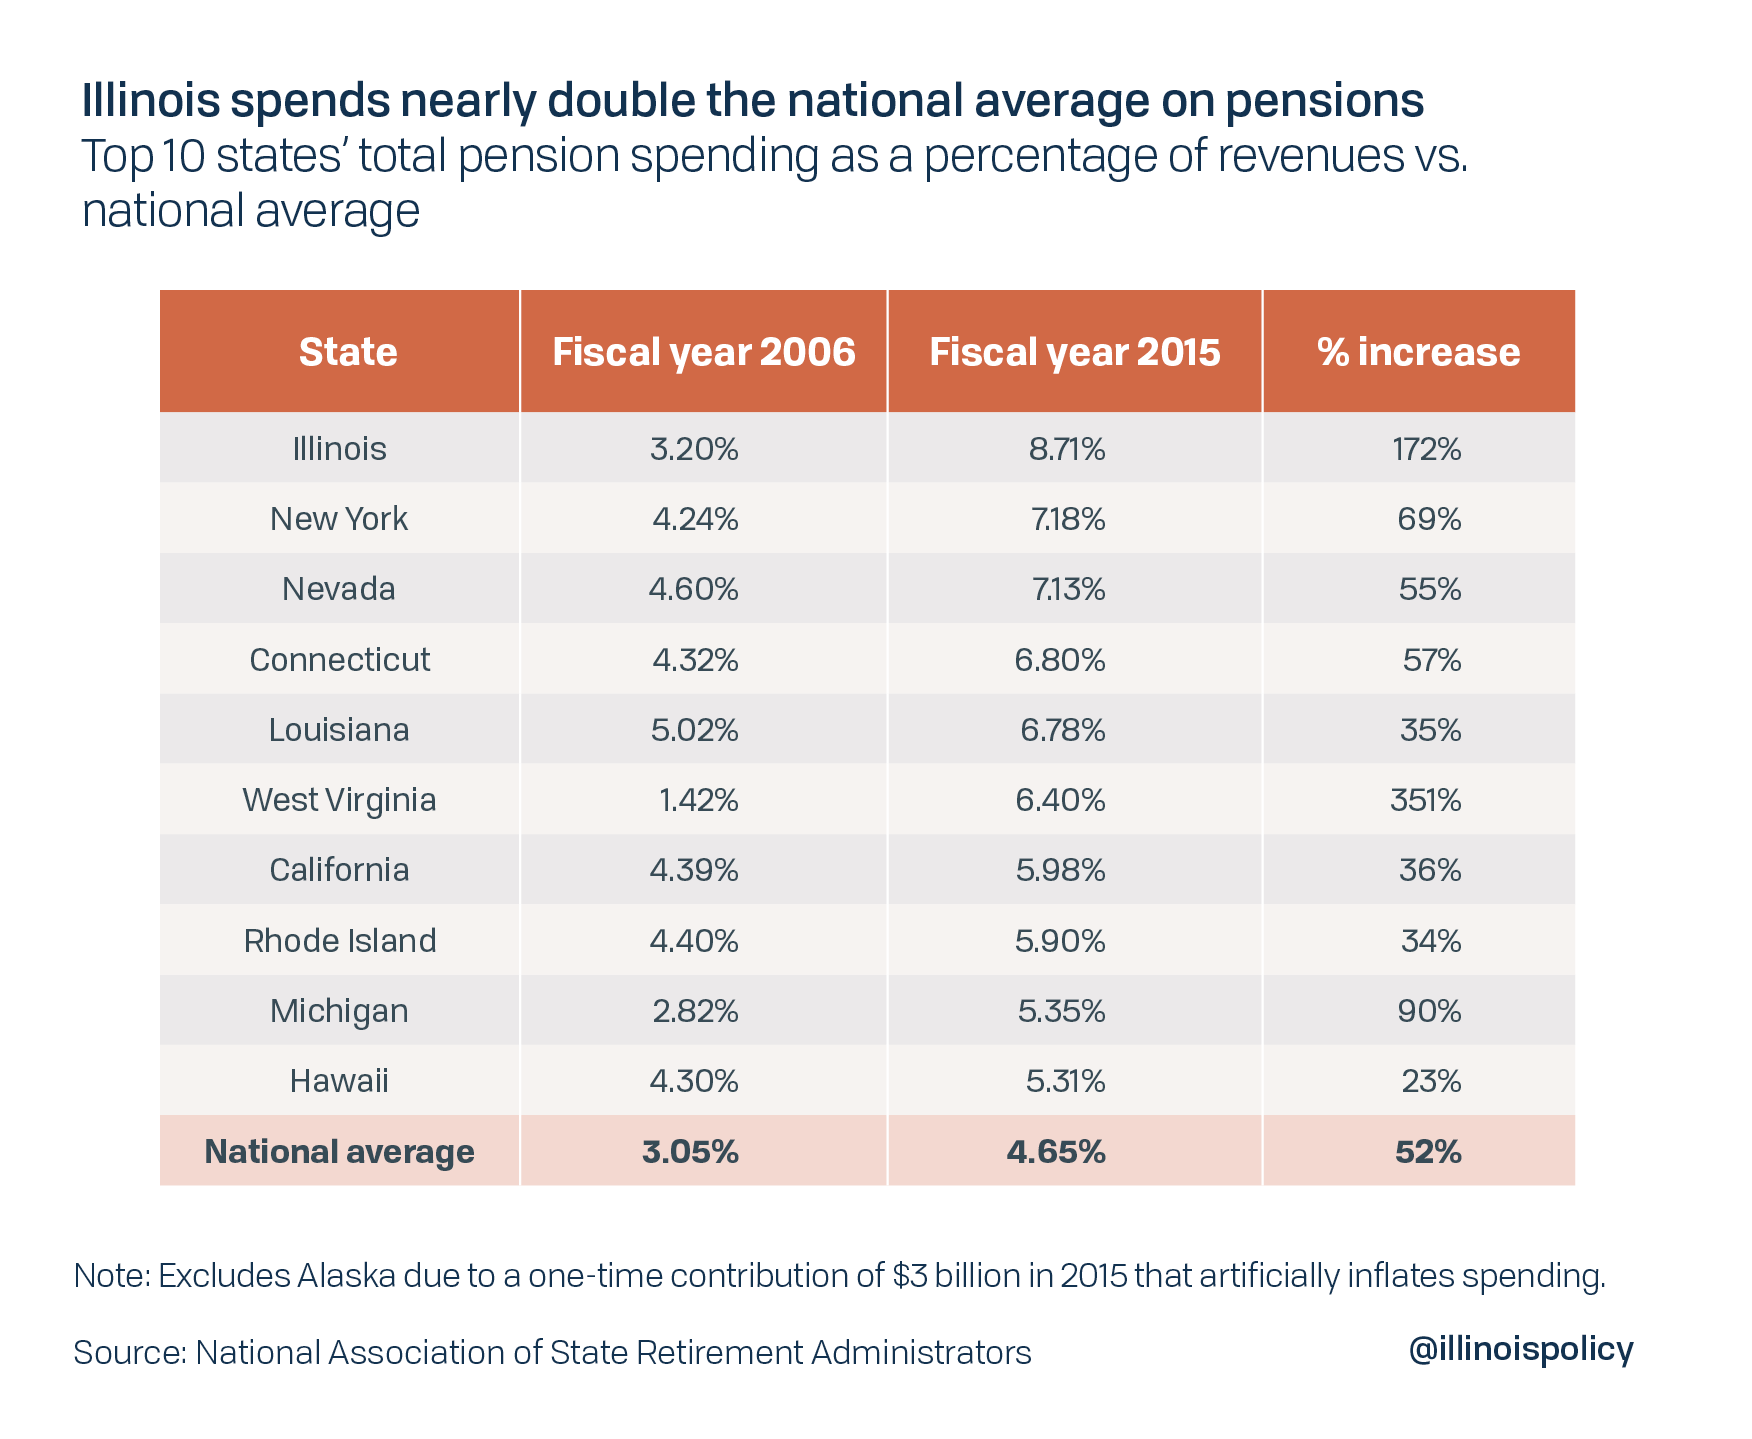 Illinois spends nearly double the national average on pensions